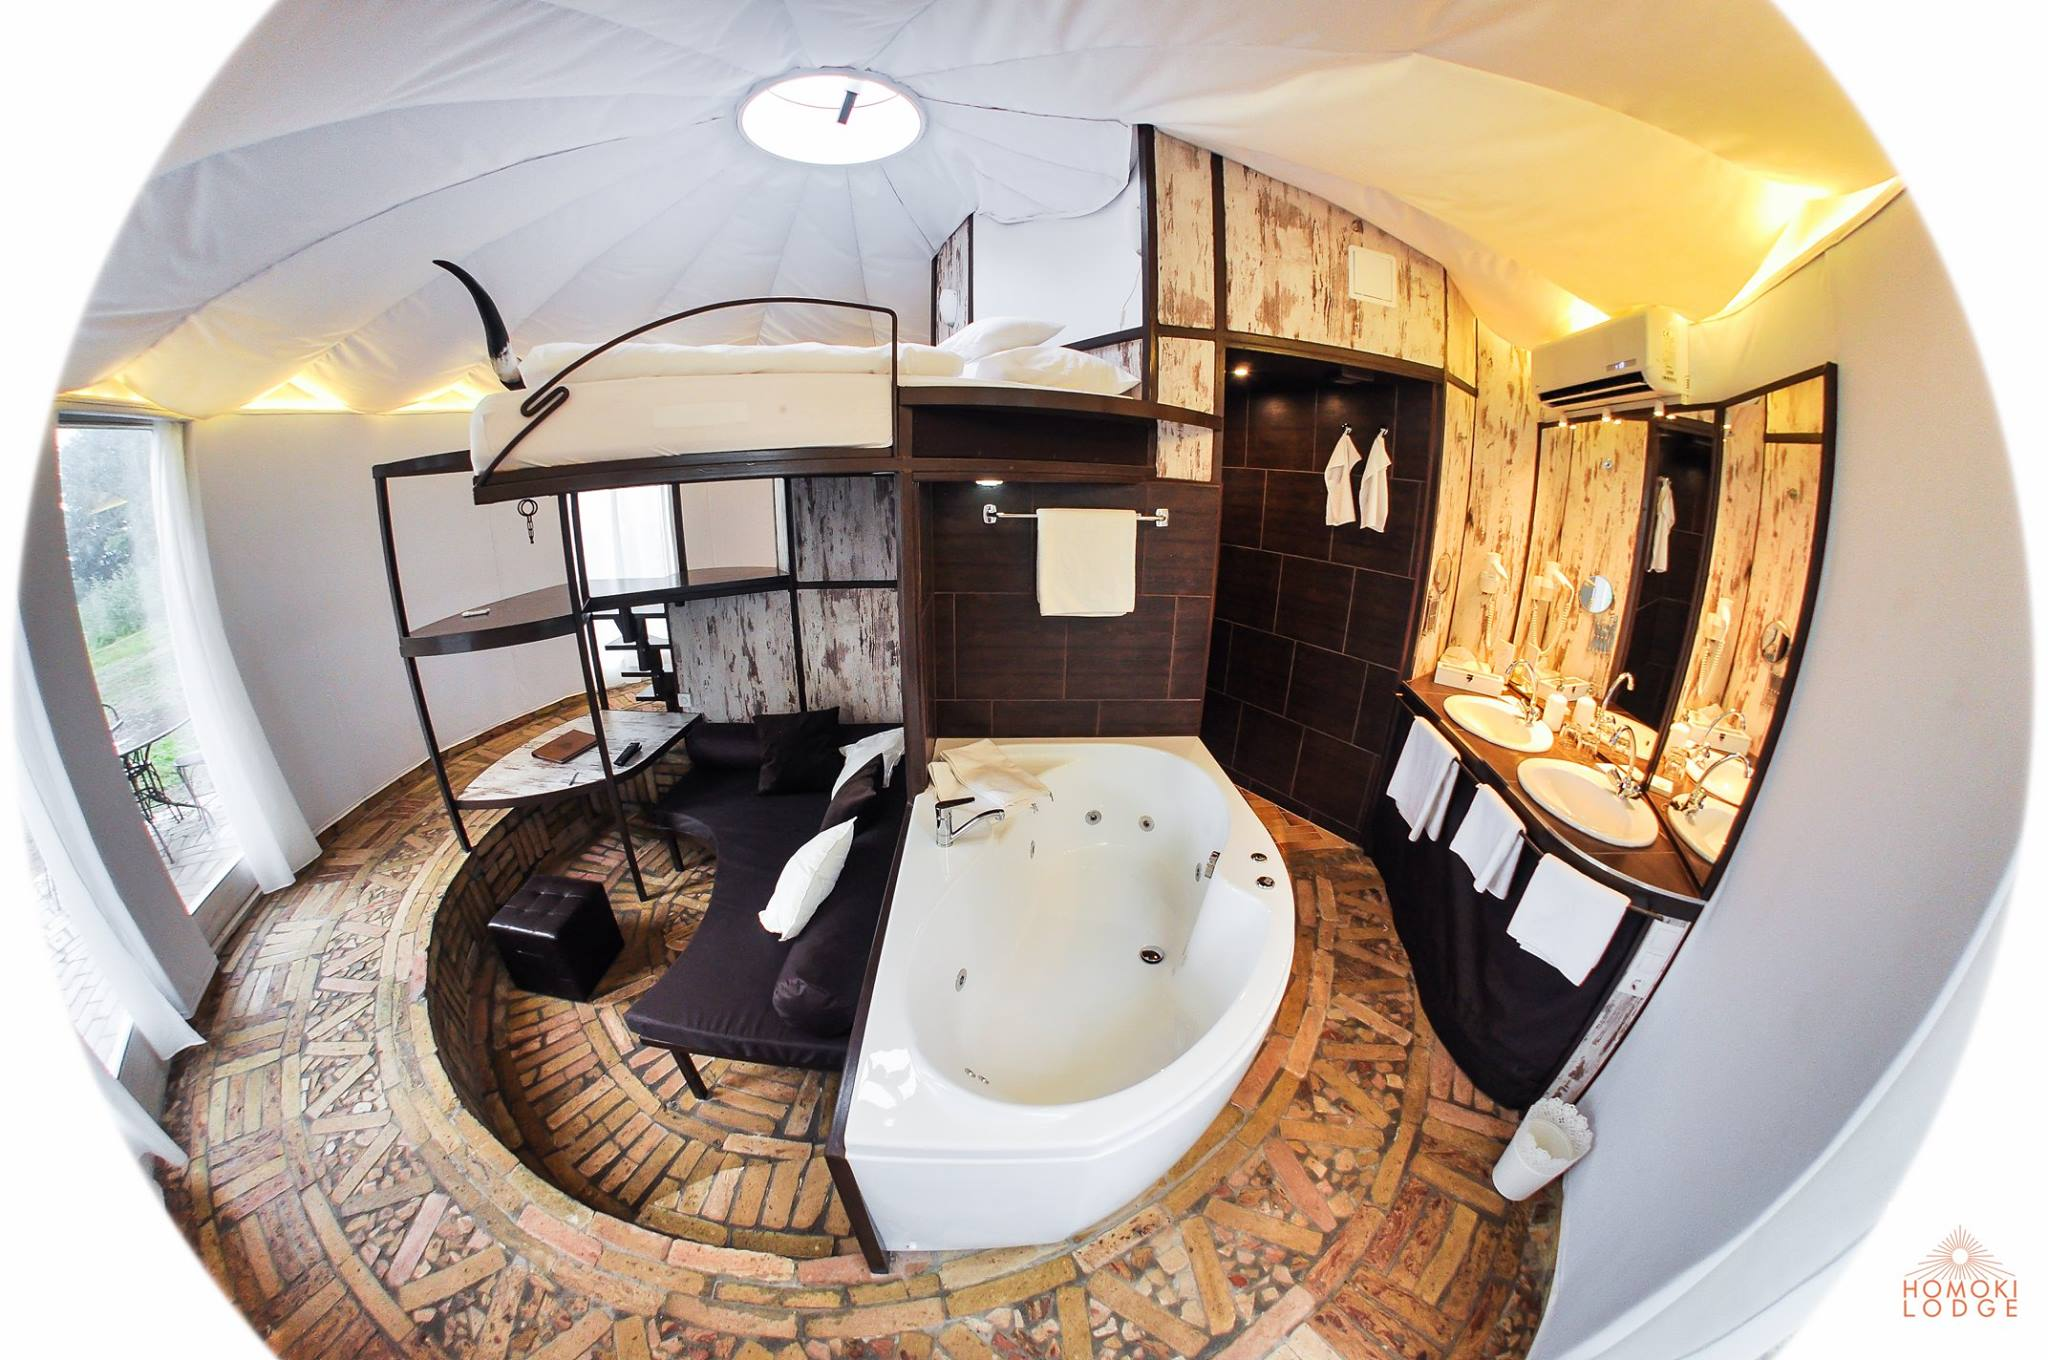 Jacussi bath and separate shower in the Luxury Yurt